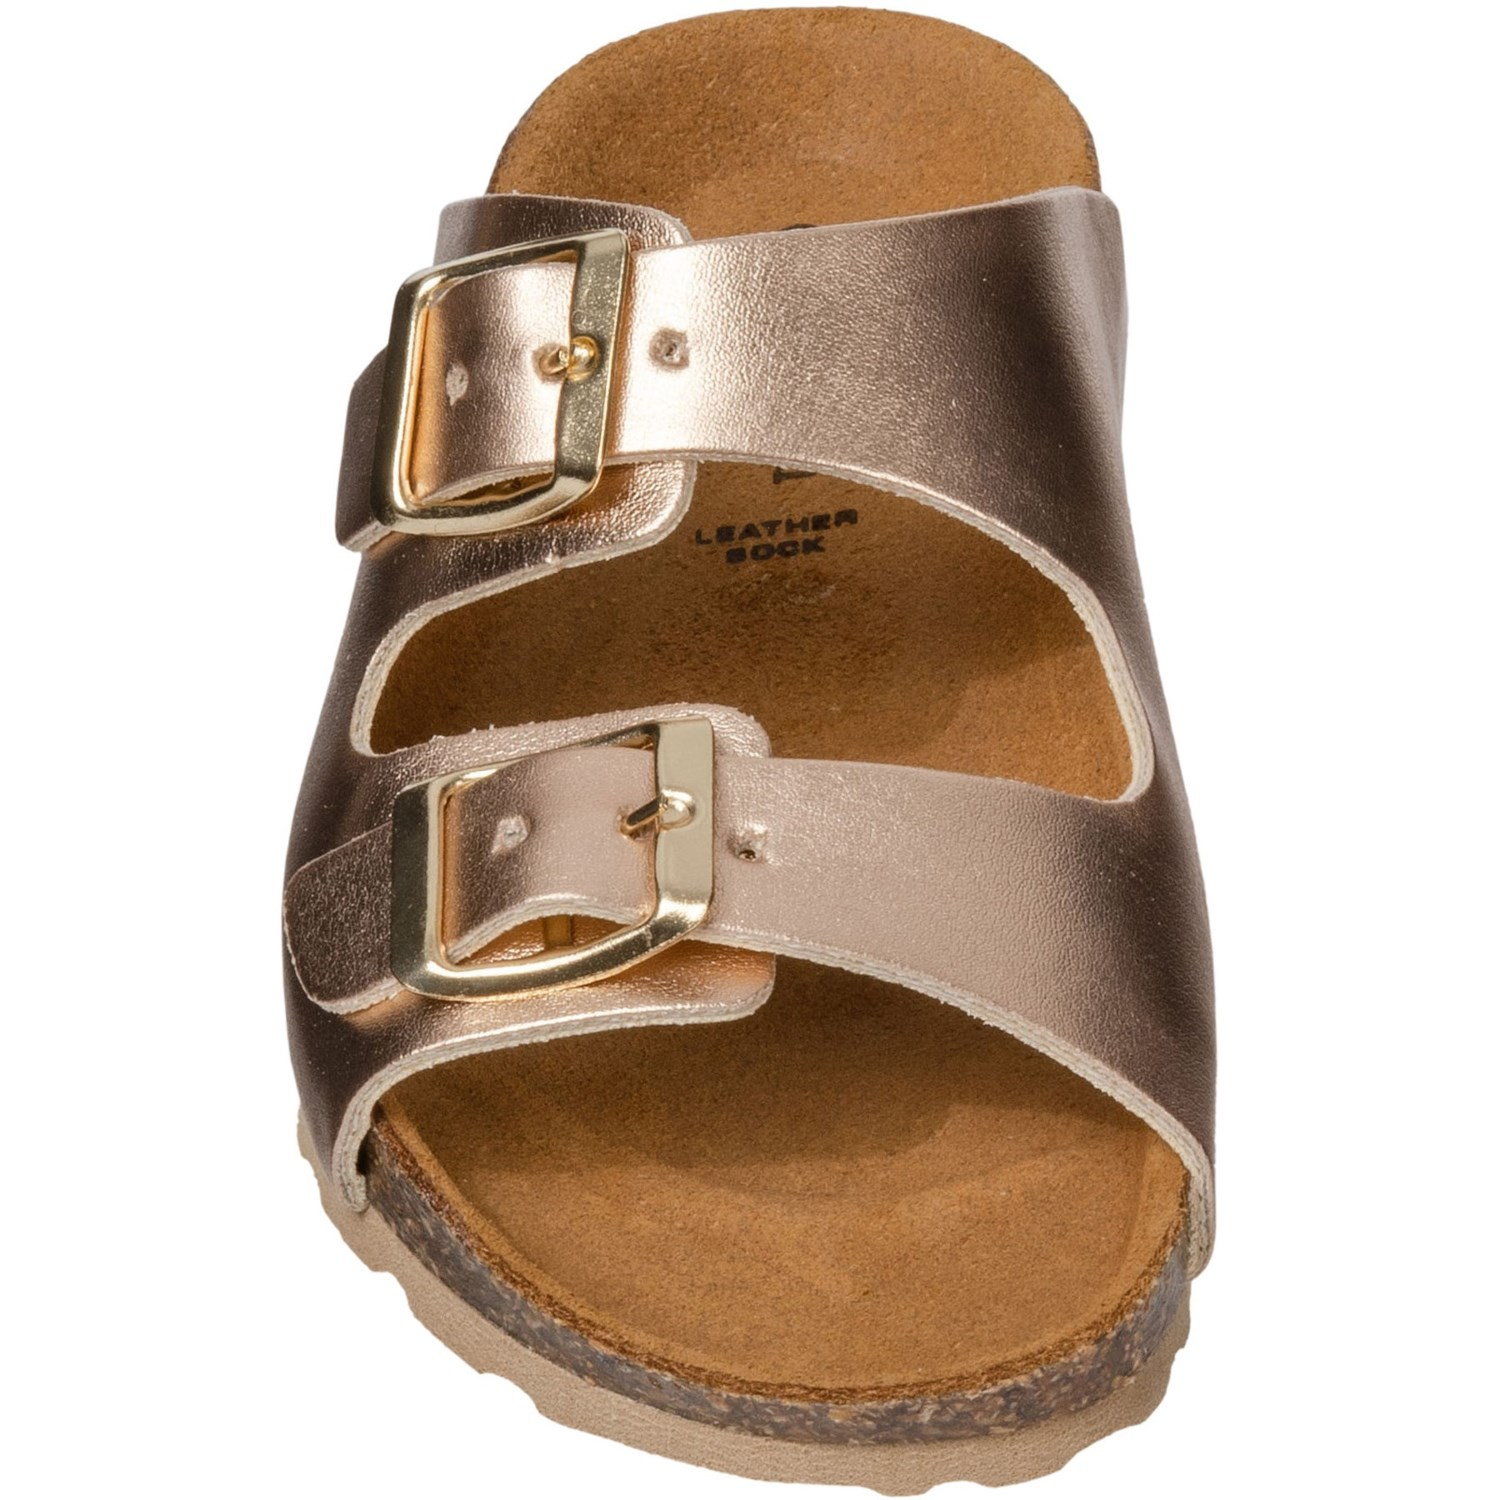 6d1c8a829c0 Made in Italy Rose Gold Double Buckle Sandals (For Girls) - Save 28%